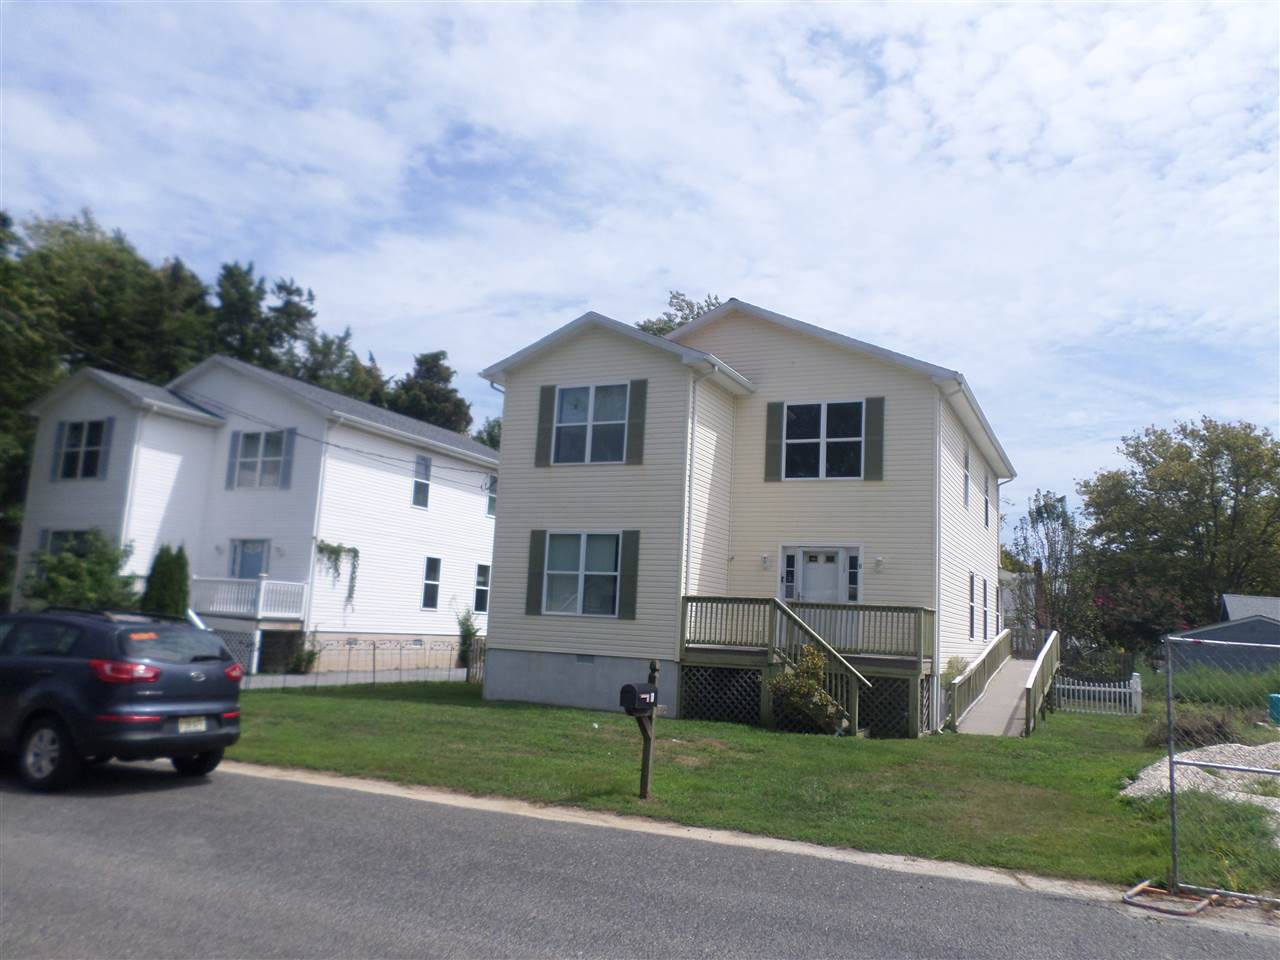 6 N 10th Avenue, Del Haven, NJ 08251